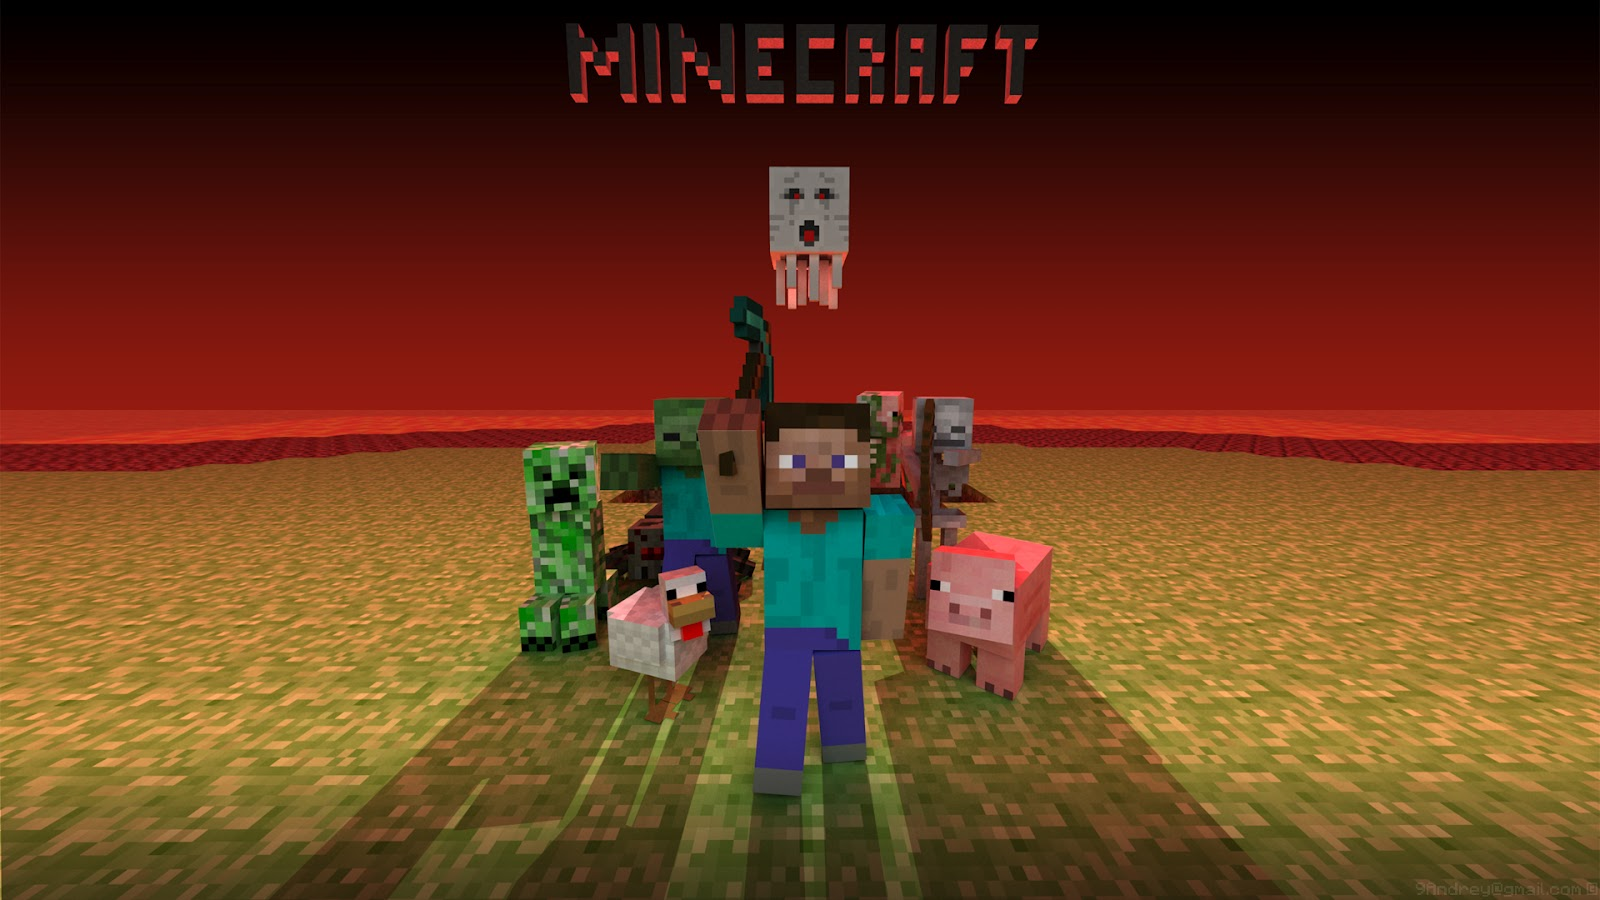 Download accounts on this website and get minecraft for free instead